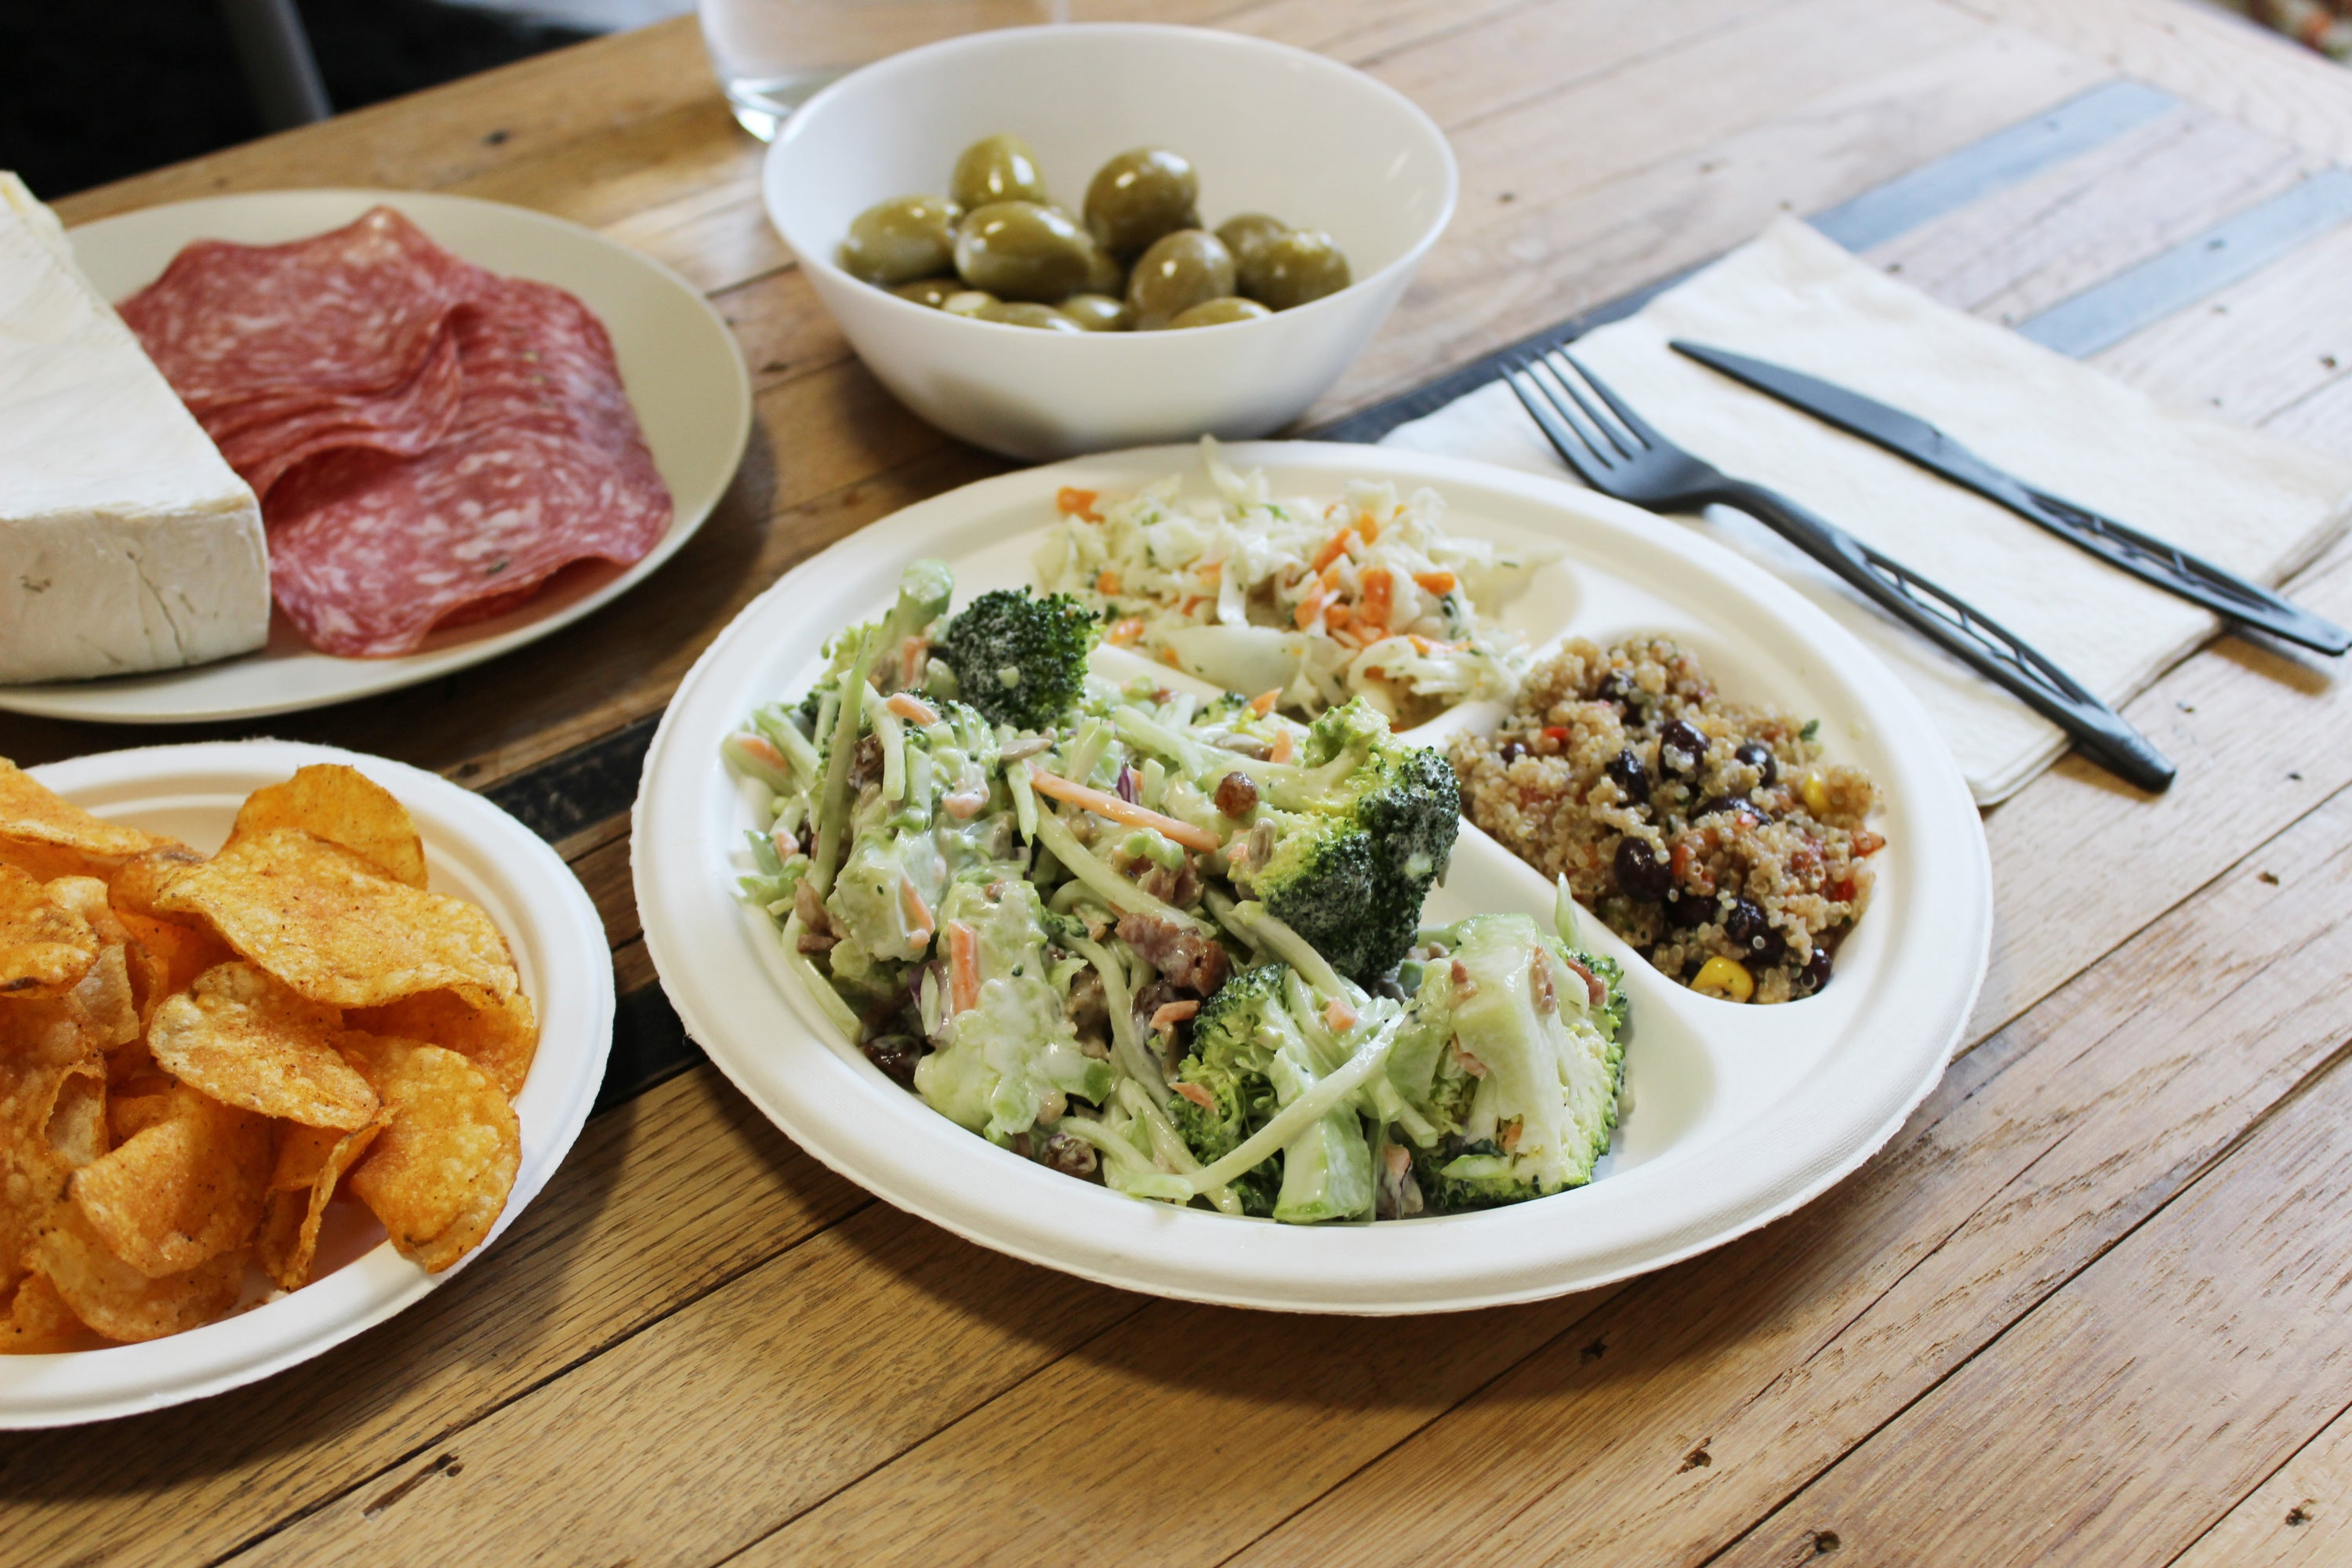 biodegradable plates with food